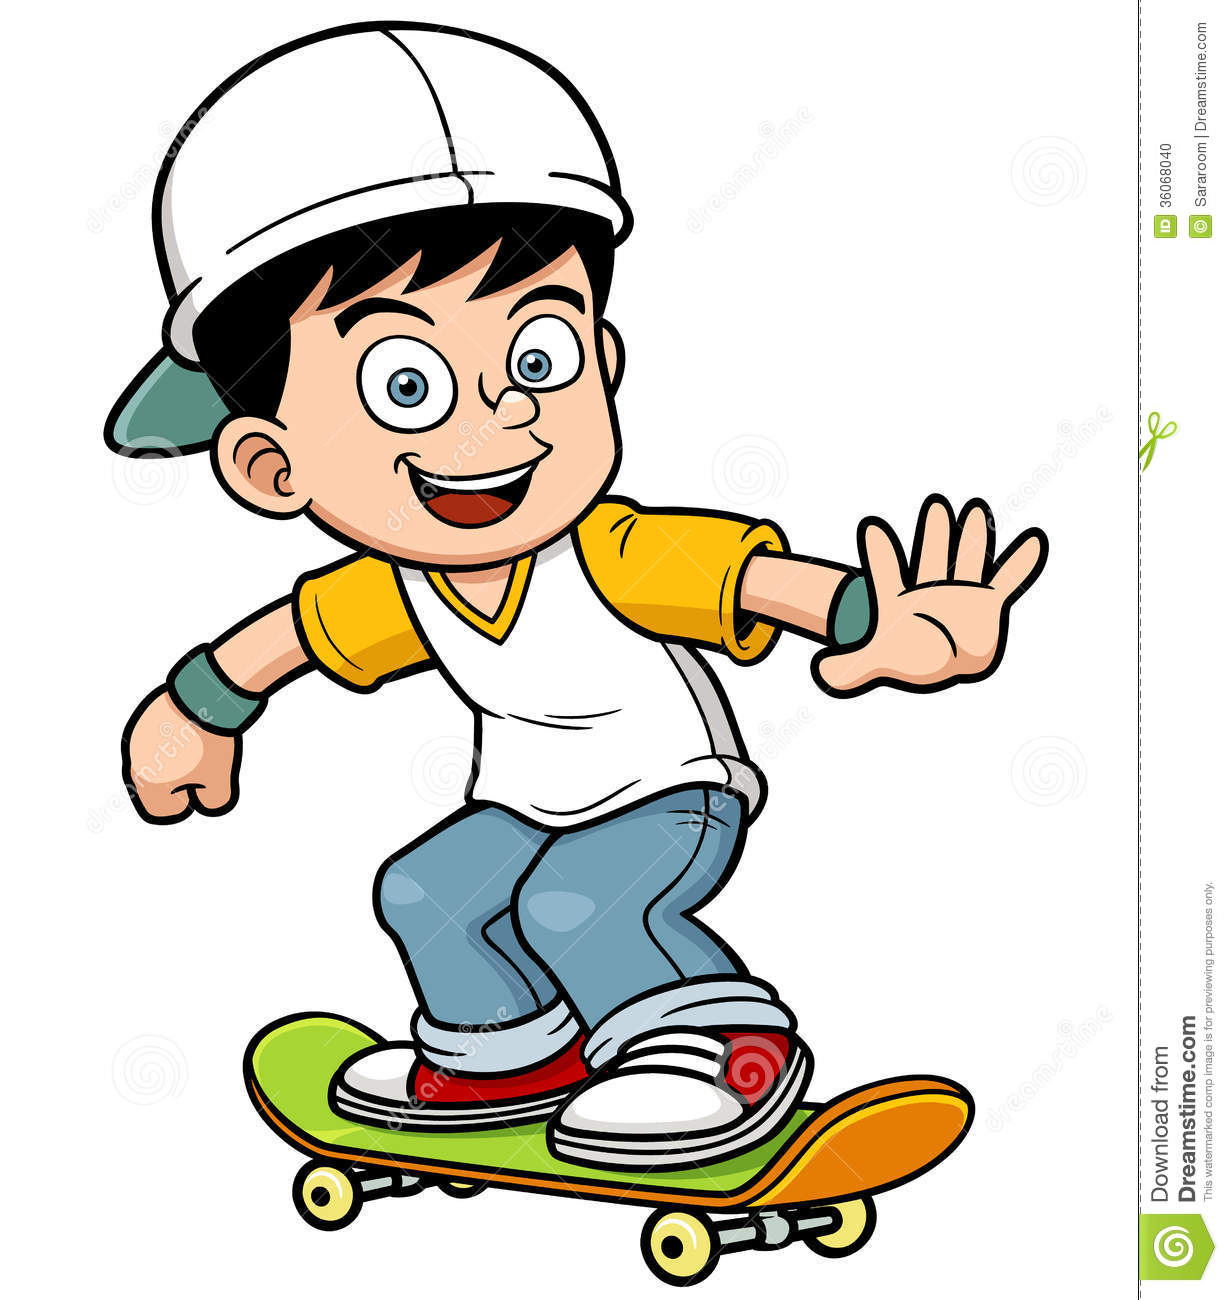 1228x1300 Skating Skateboard Clipart, Explore Pictures